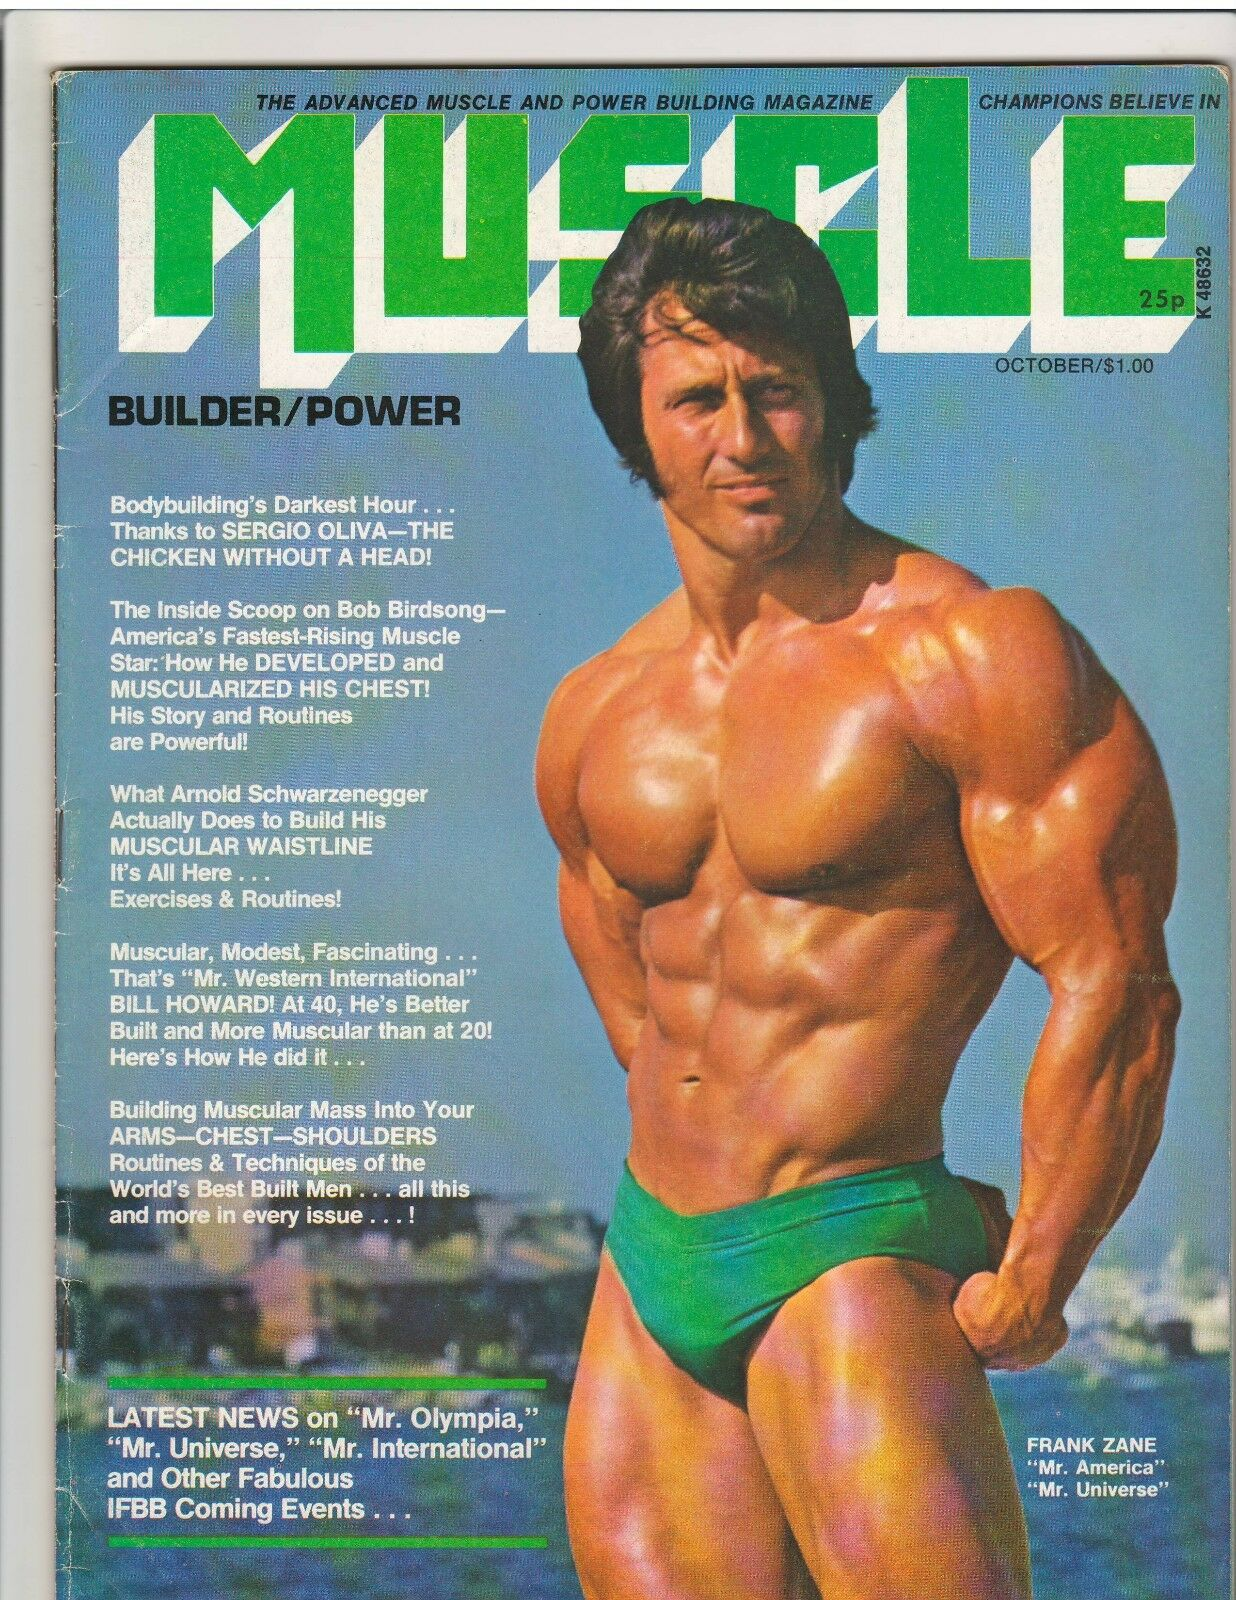 Frank zane erotic pictures